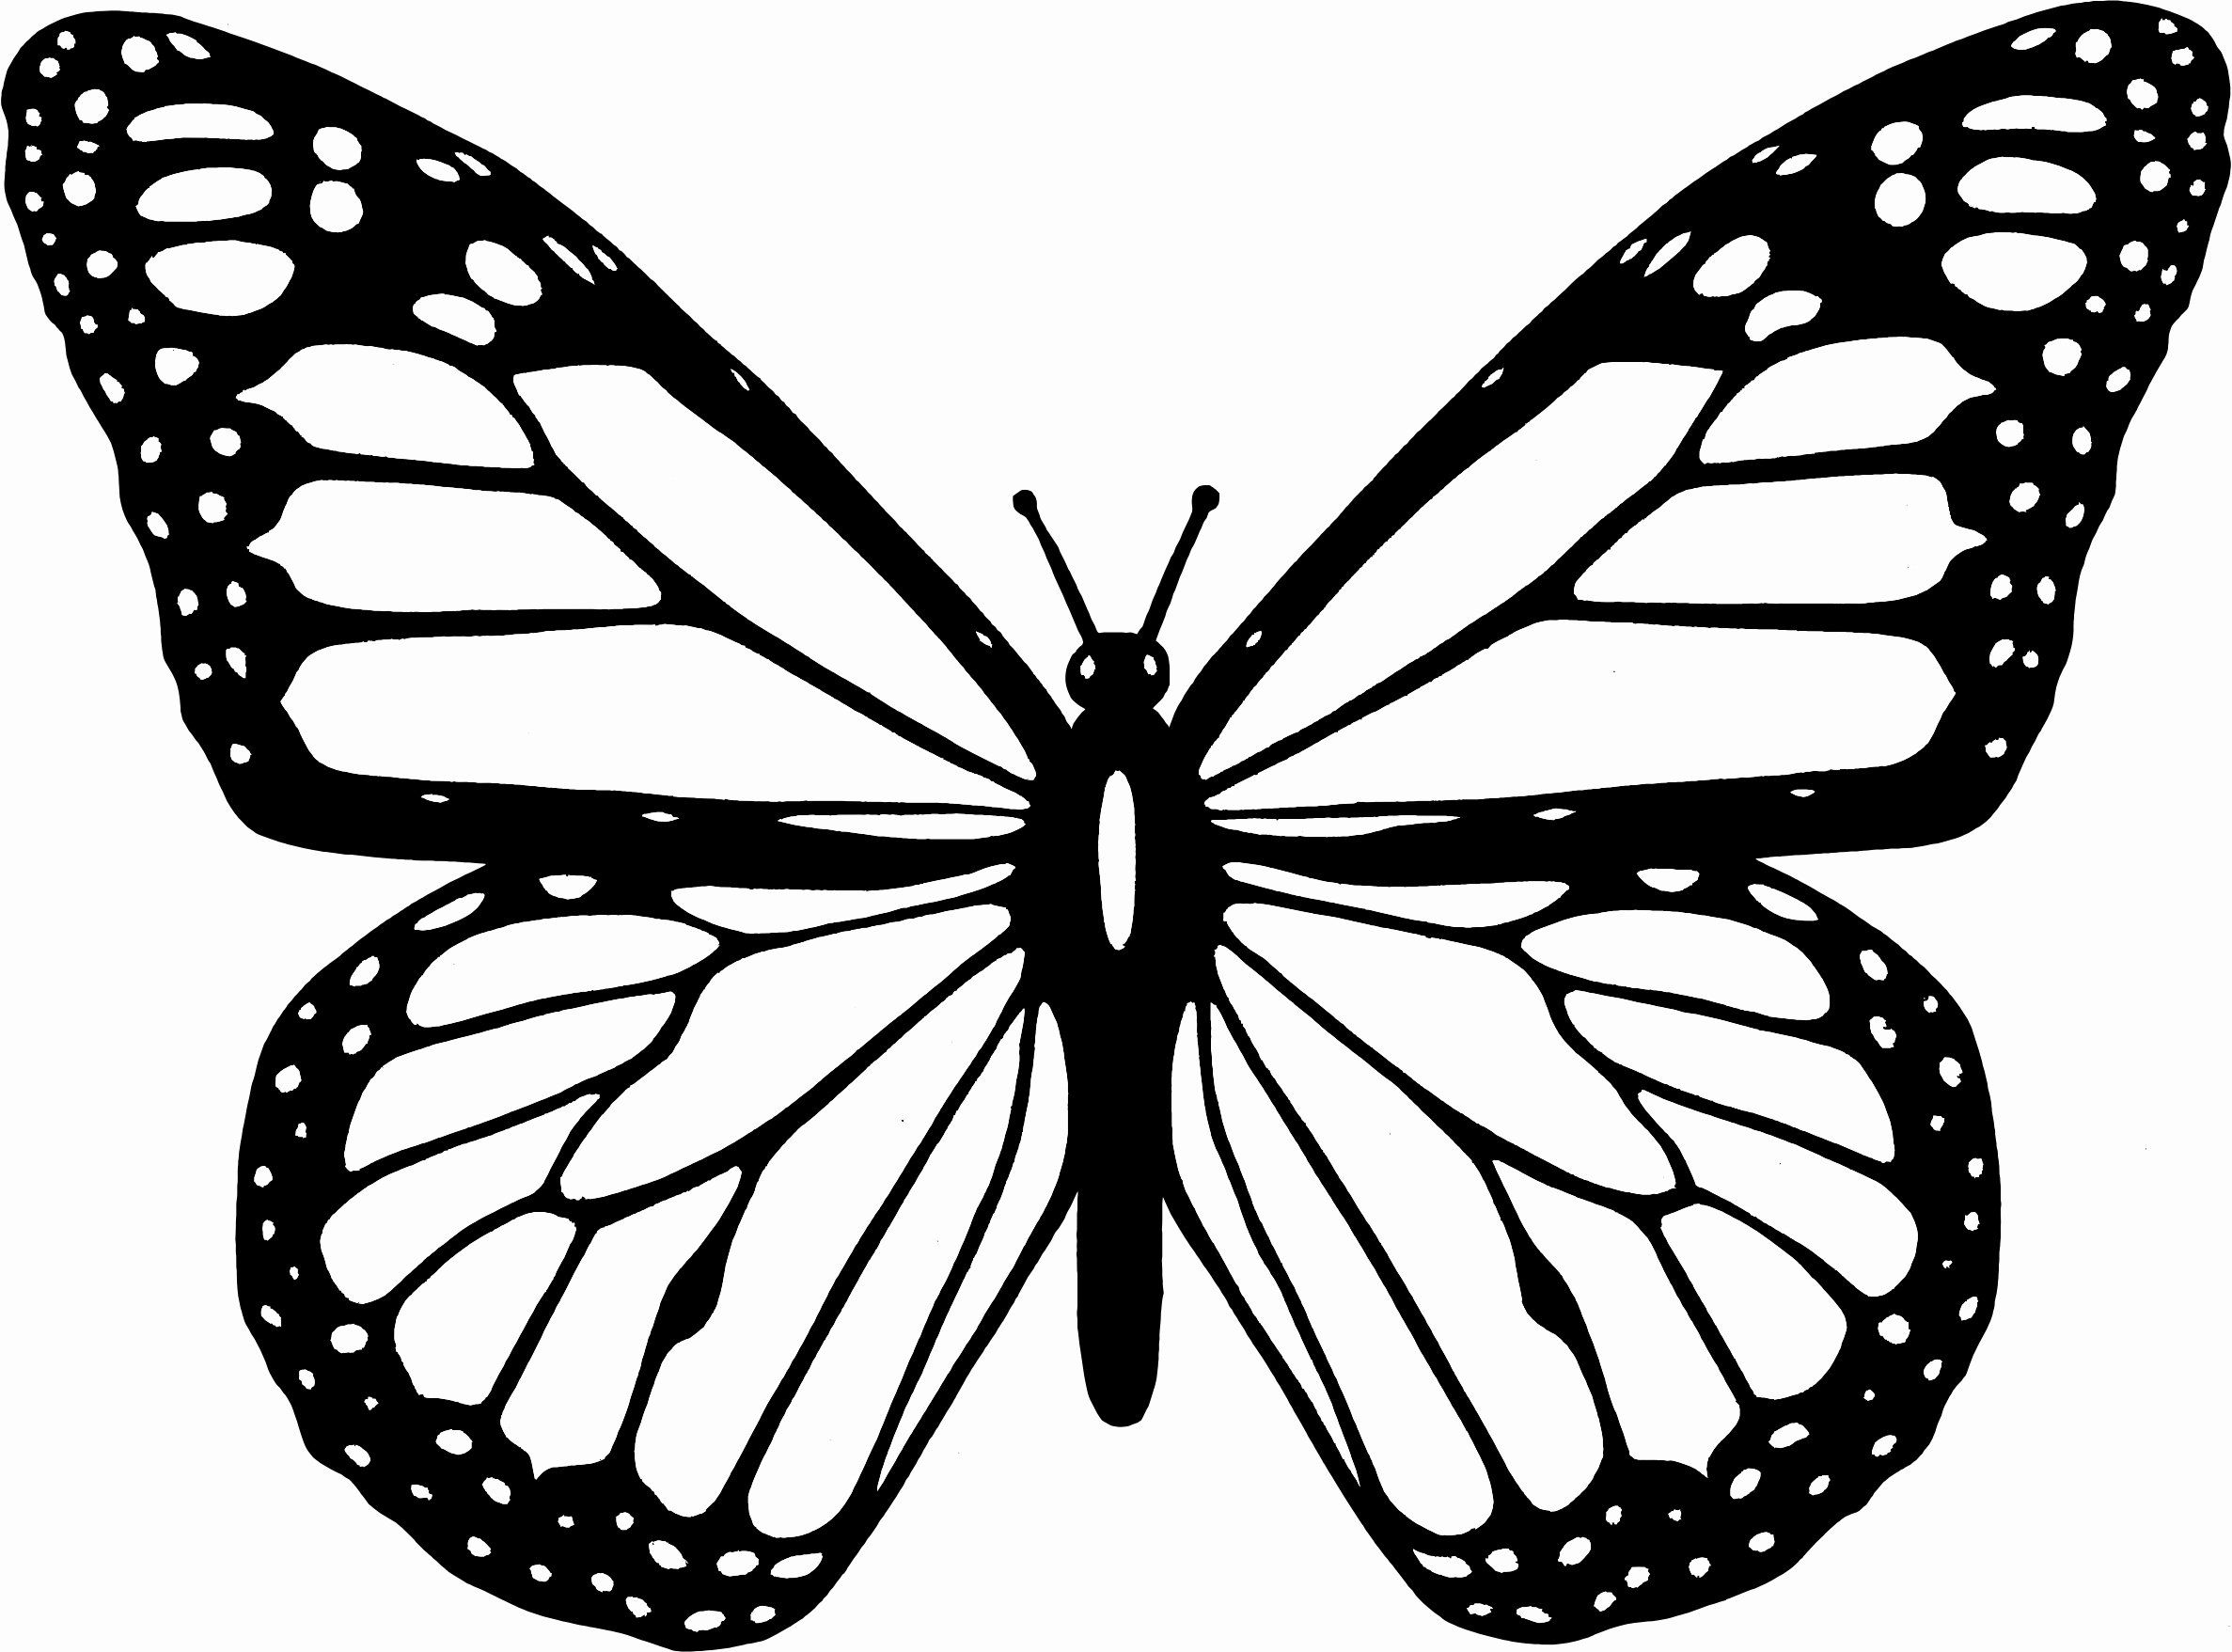 Monarch Butterfly Coloring Page New Monarch Butterfly Clipart Coloring Page Pencil And In Butterfly Clip Art Butterfly Coloring Page Butterfly Printable [ 1757 x 2374 Pixel ]